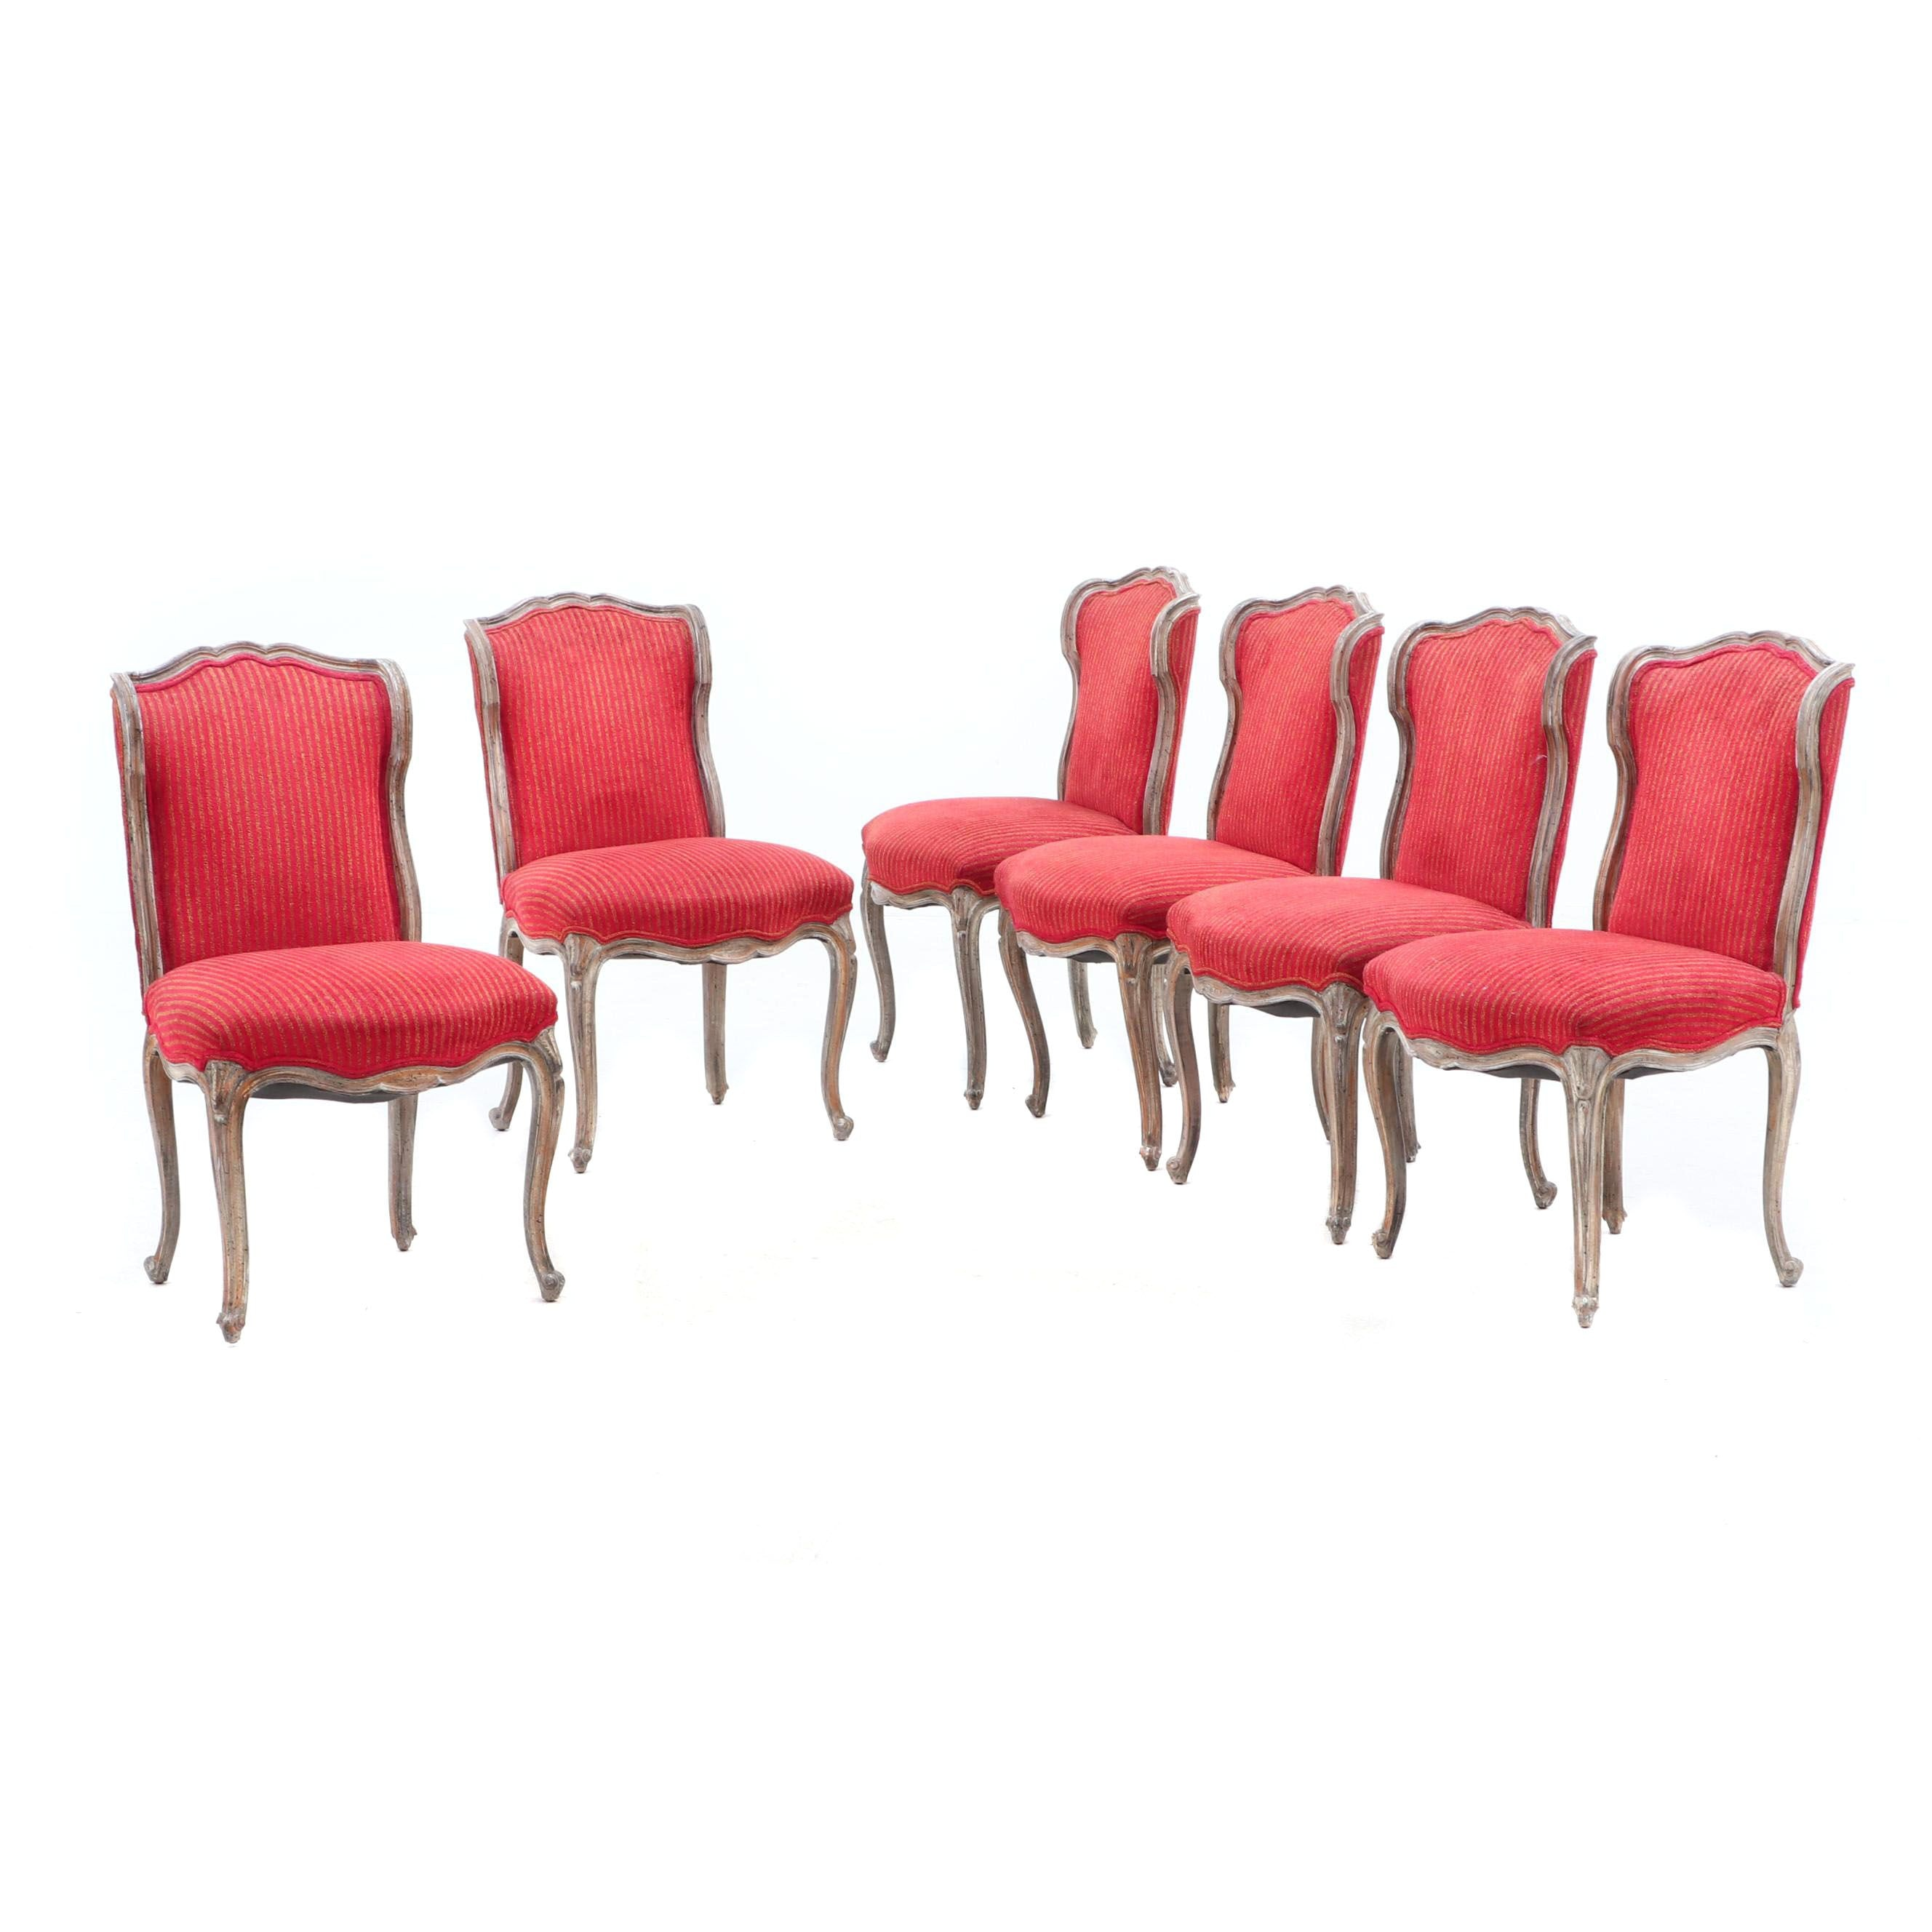 French Style Painted Distressed Finish Upholstered Side Chairs, Circa 1980s